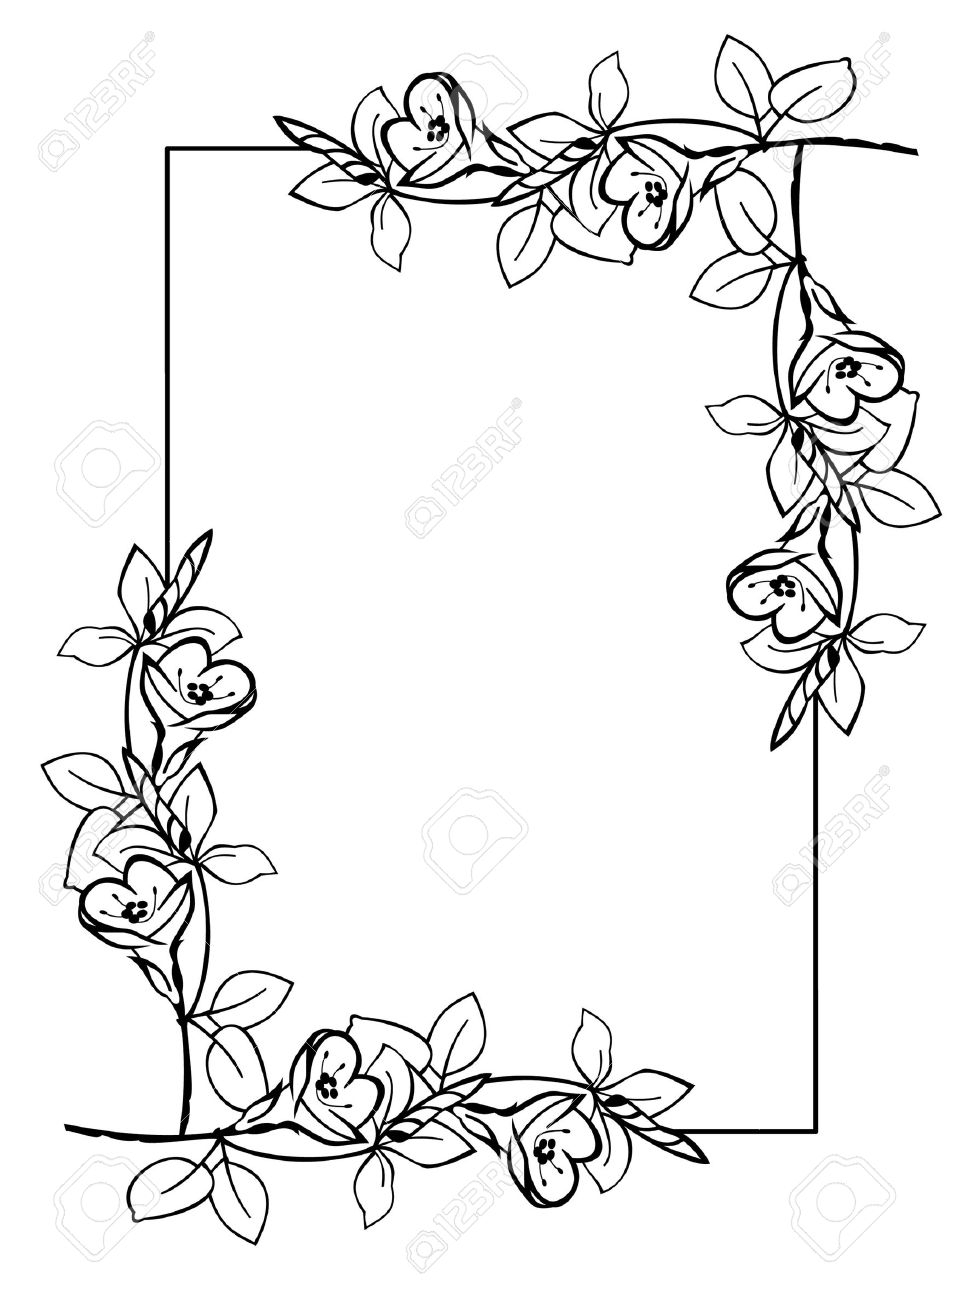 968x1300 Flowers Drawings With Border Roses. Rose Flower Wreath. Vector